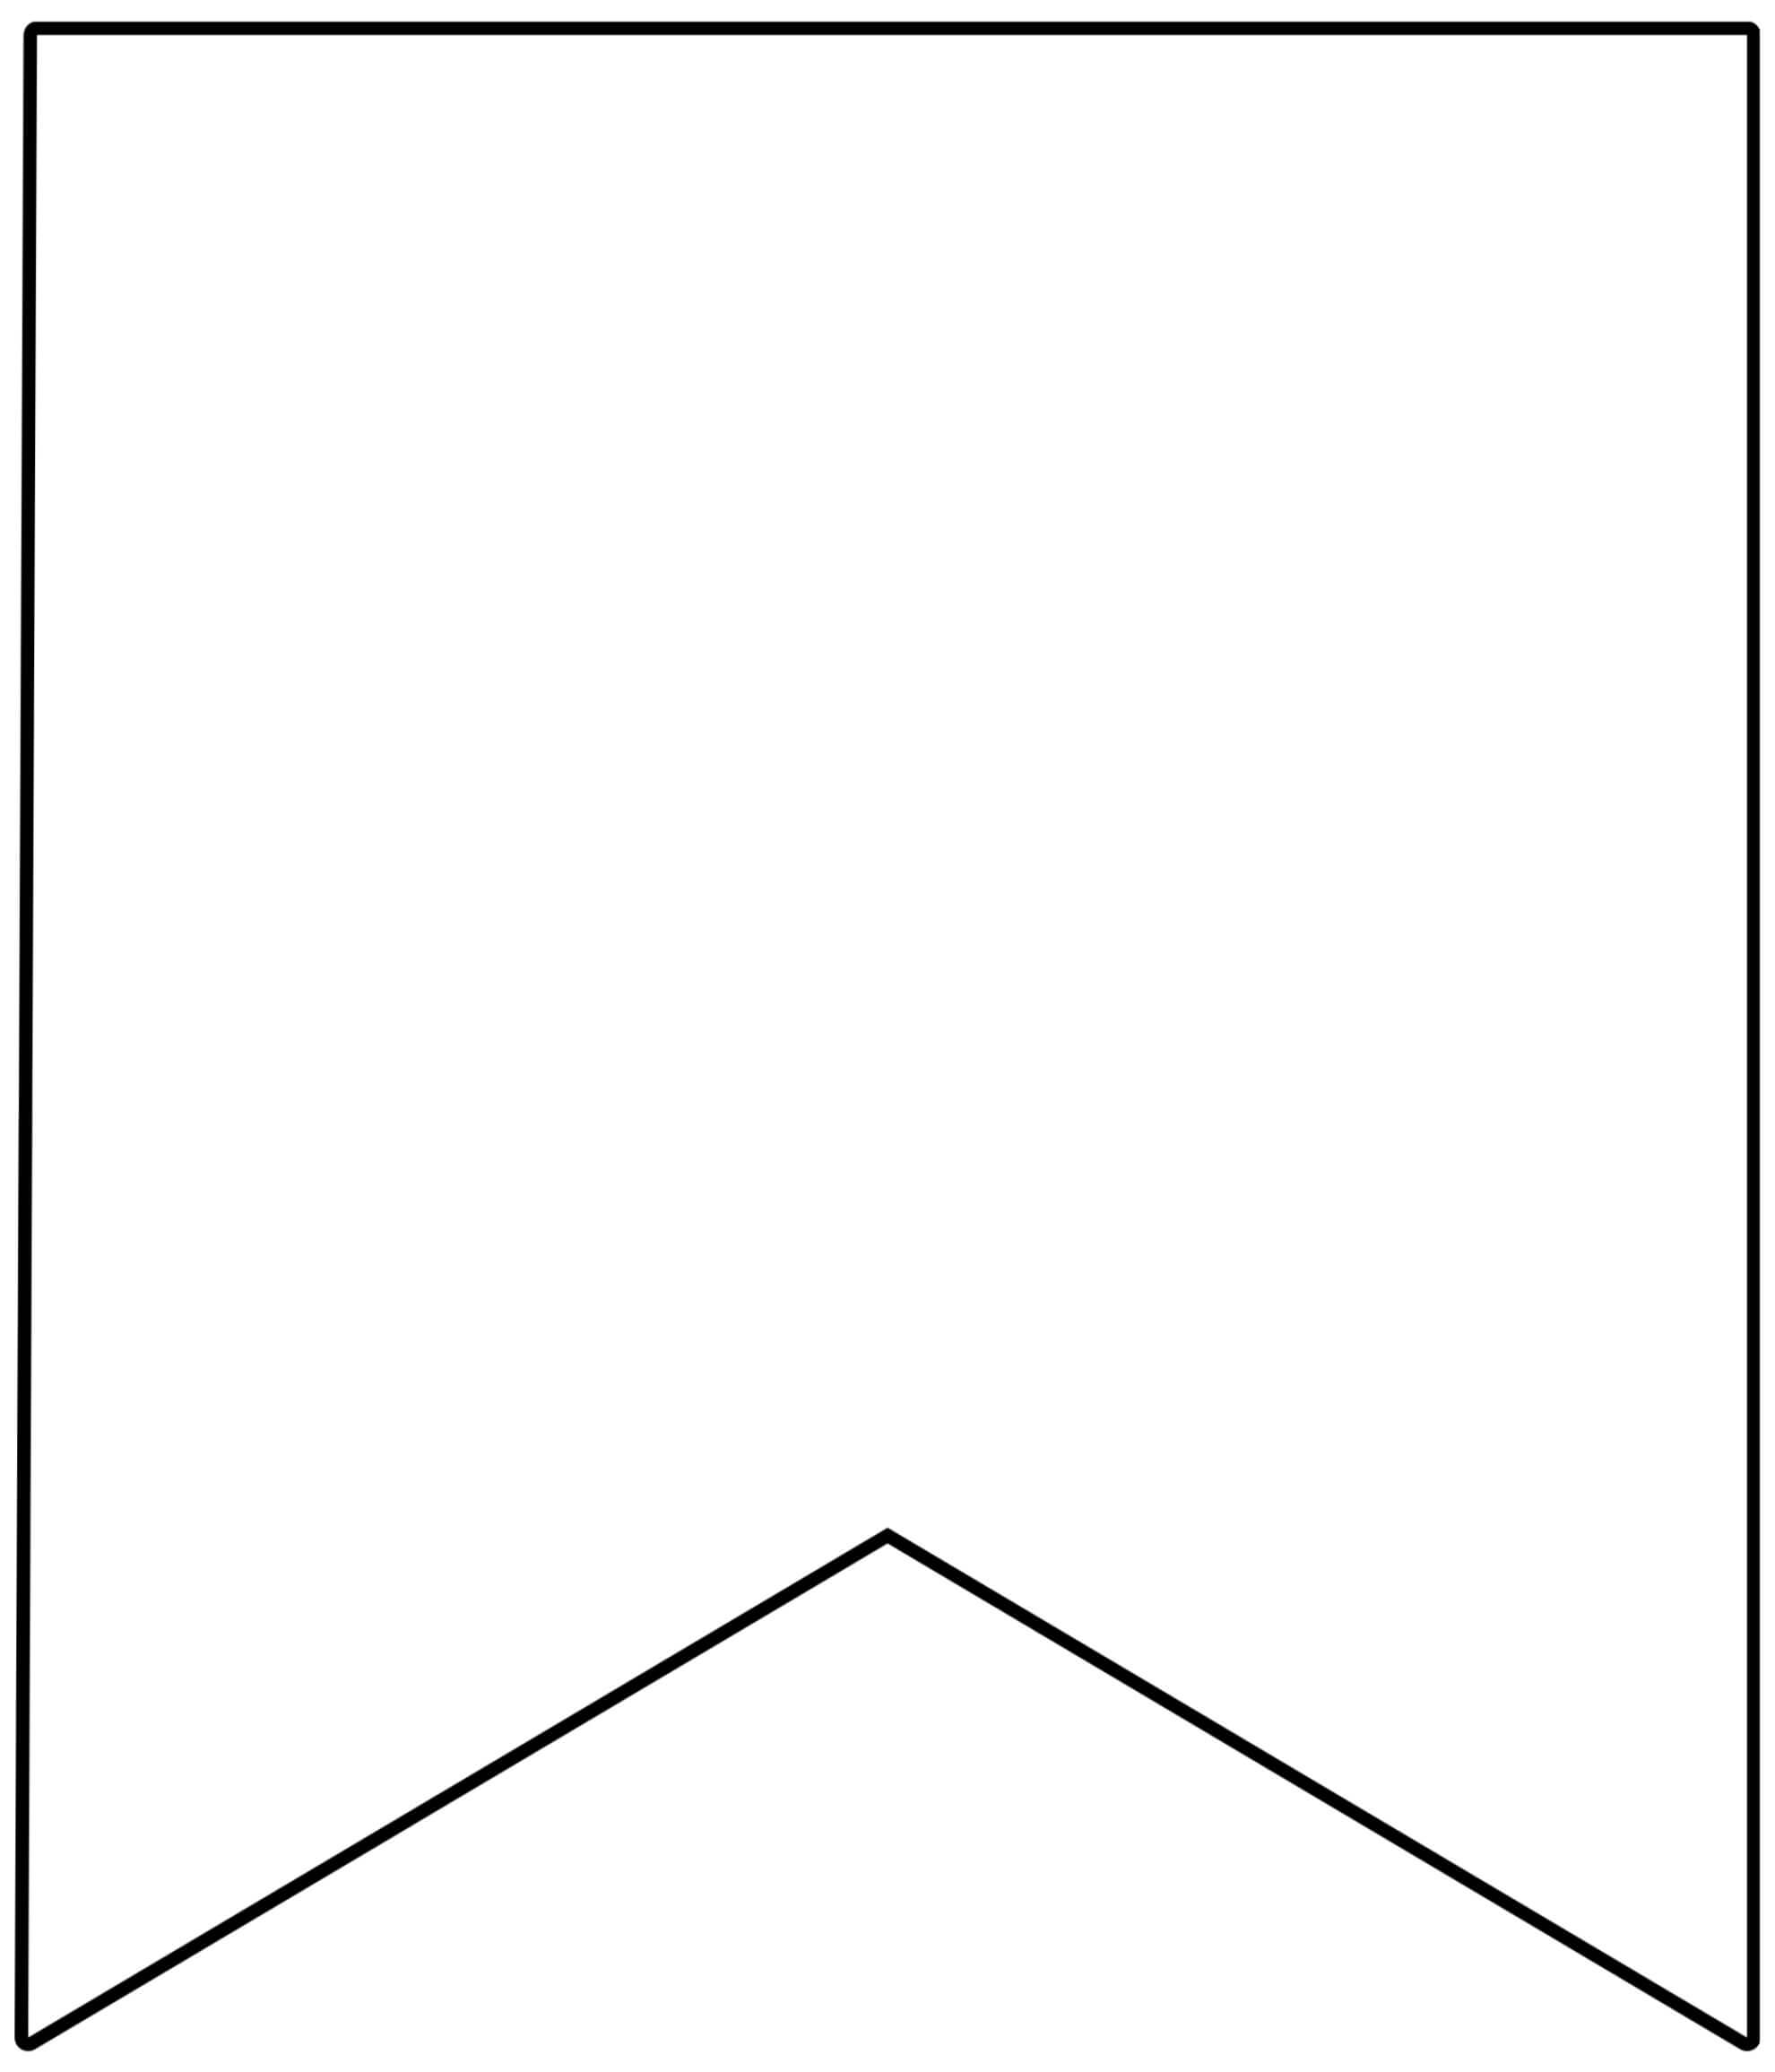 Free Printable Banner Templates {Blank Banners} - Paper With Regard To Homemade Banner Template